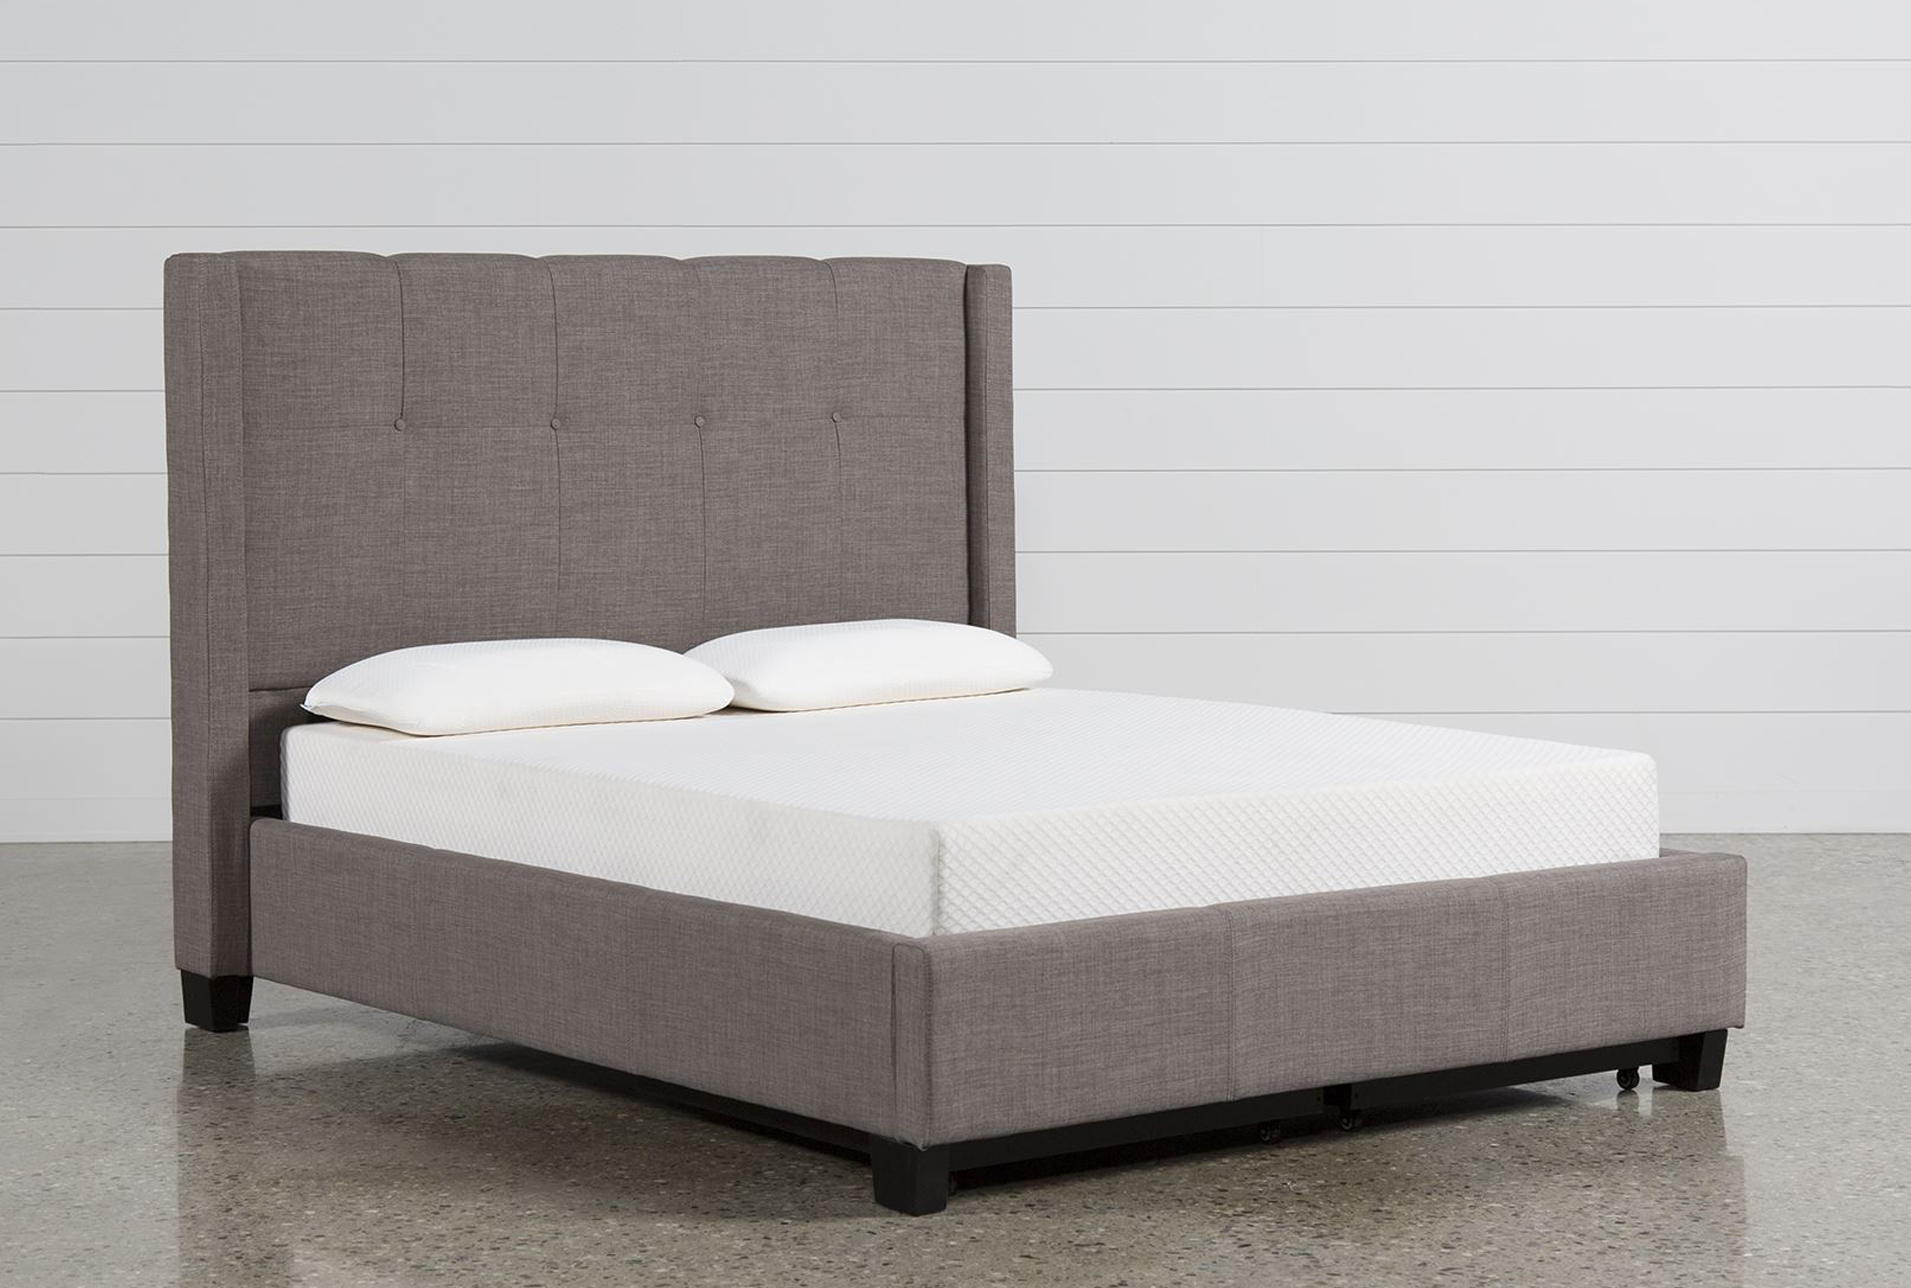 Damon Stone California King Upholstered Platform Bed W/Storage (Qty 1) has been successfully added to your Cart. & Damon Stone California King Upholstered Platform Bed W/Storage ...